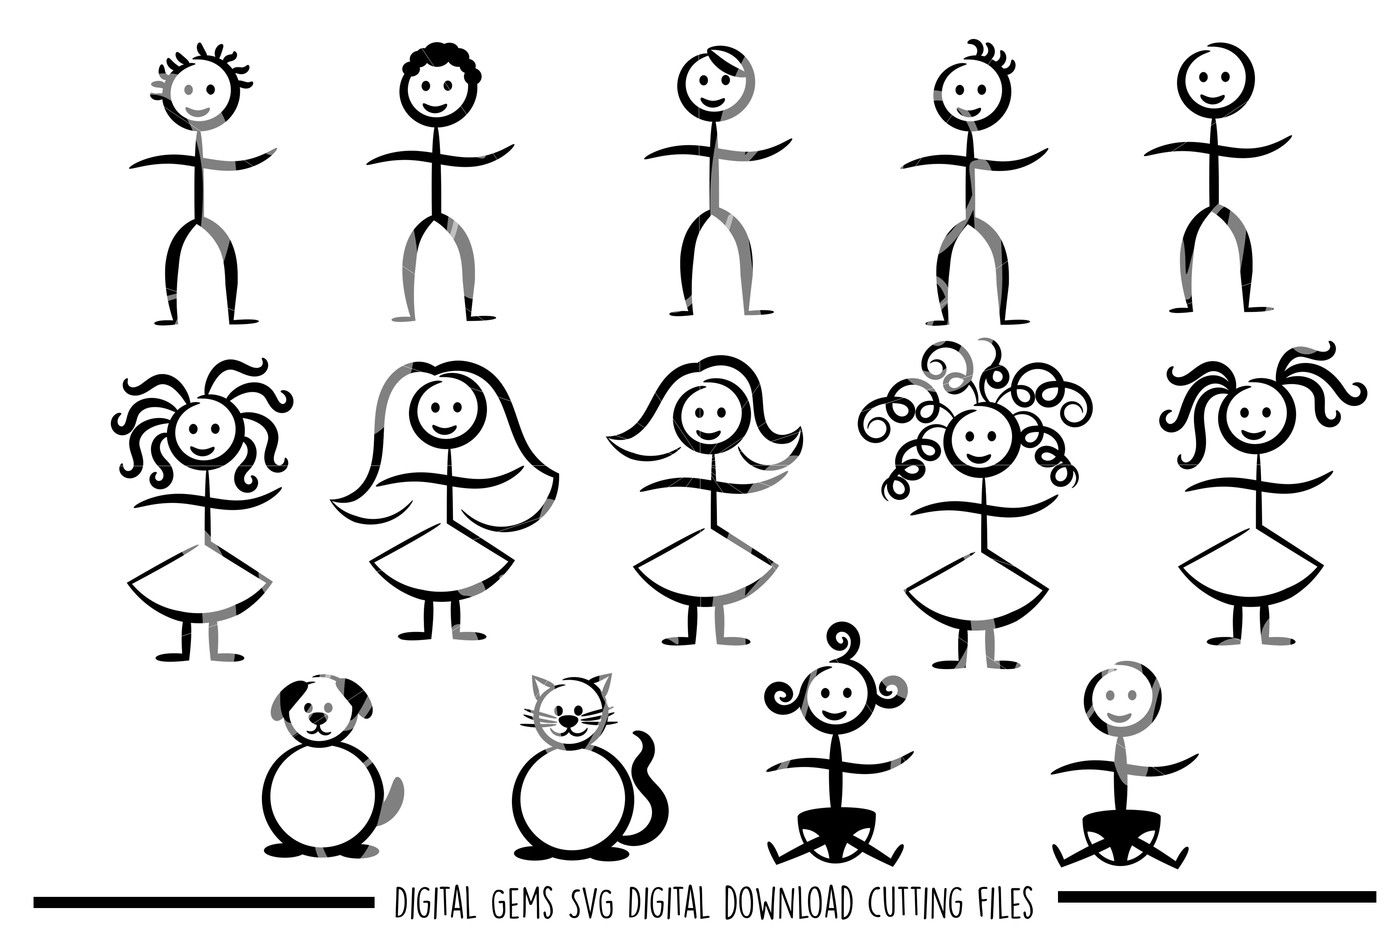 Stick Figure SVG / DXF / EPS / PNG Files By Digital Gems